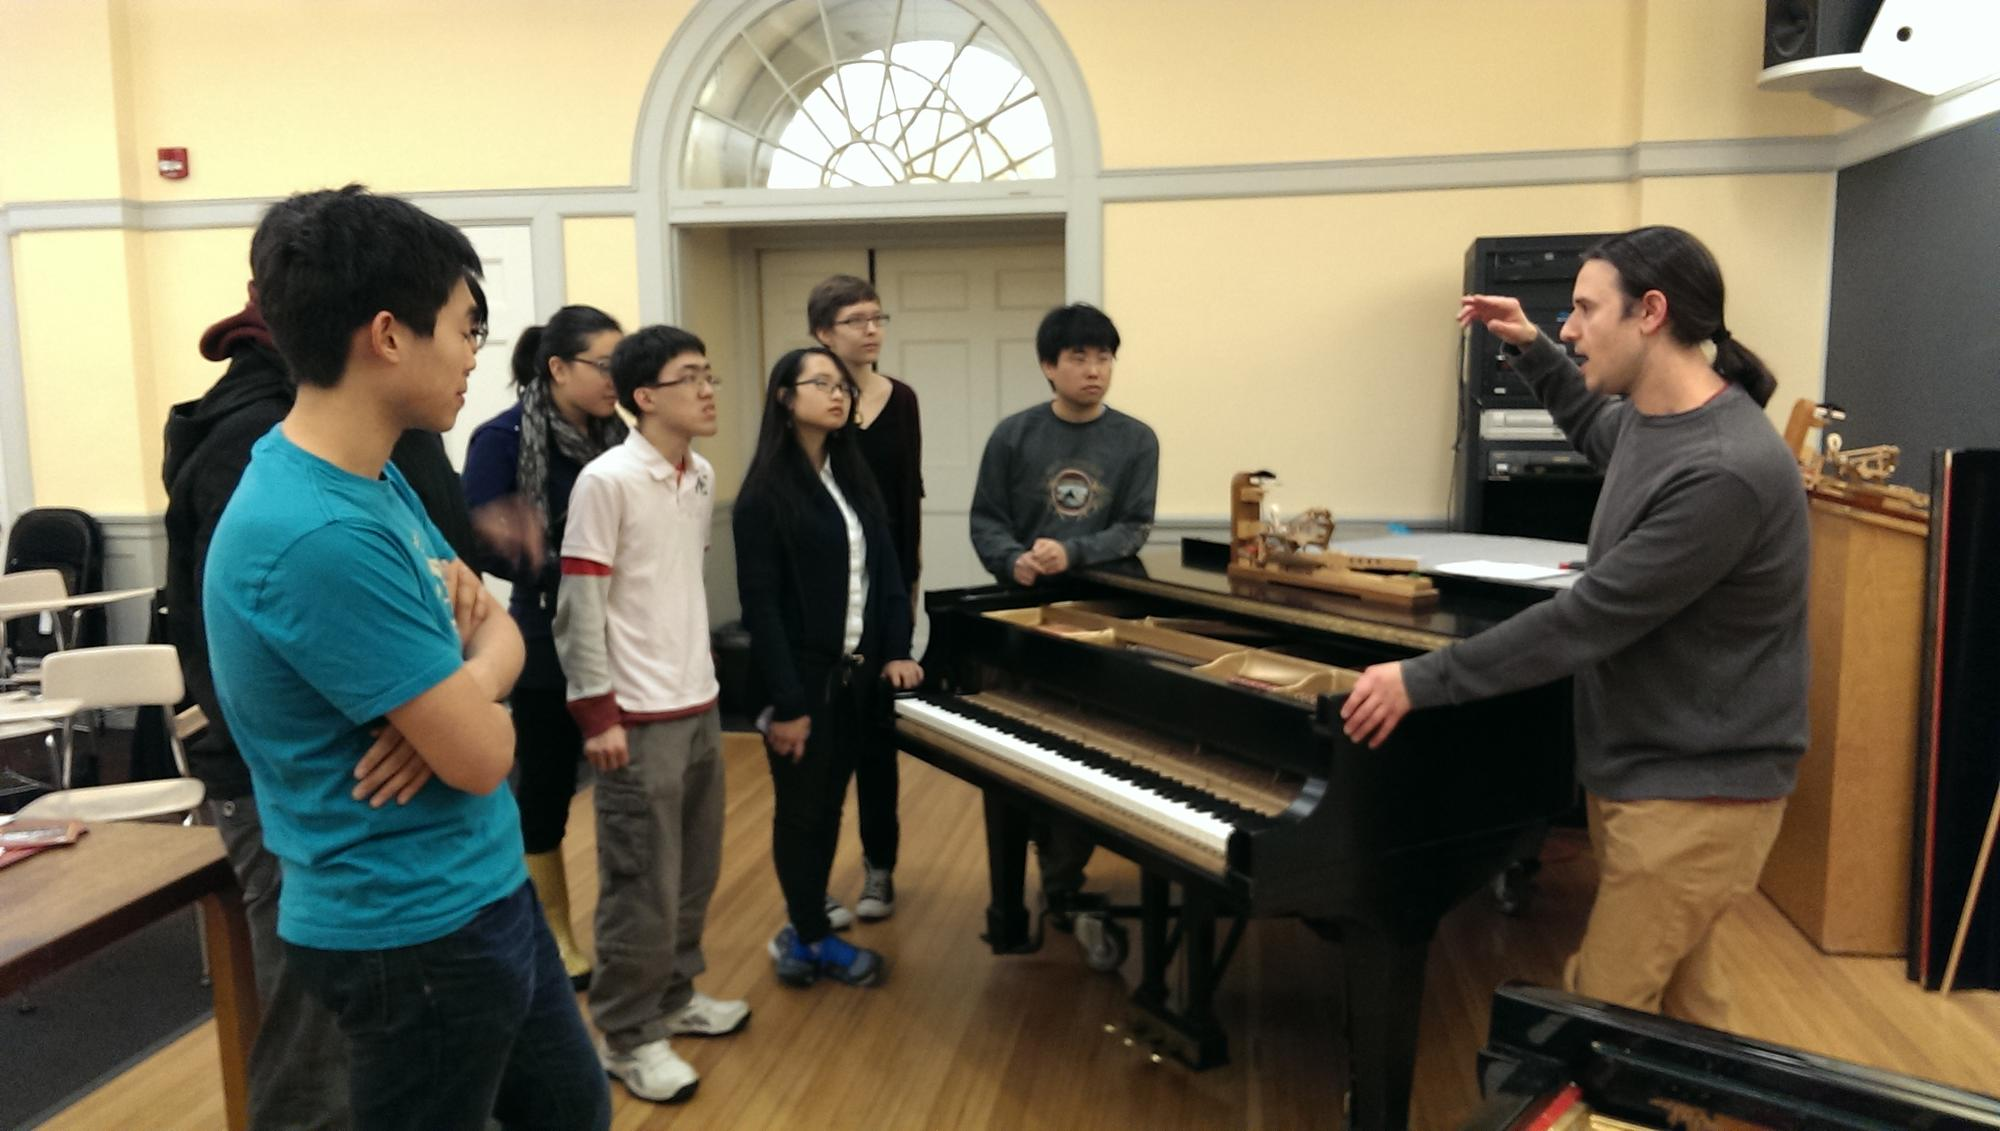 PTS staff member Richard Gruenler giving a workshop on piano technology to the Harvard College Piano Society